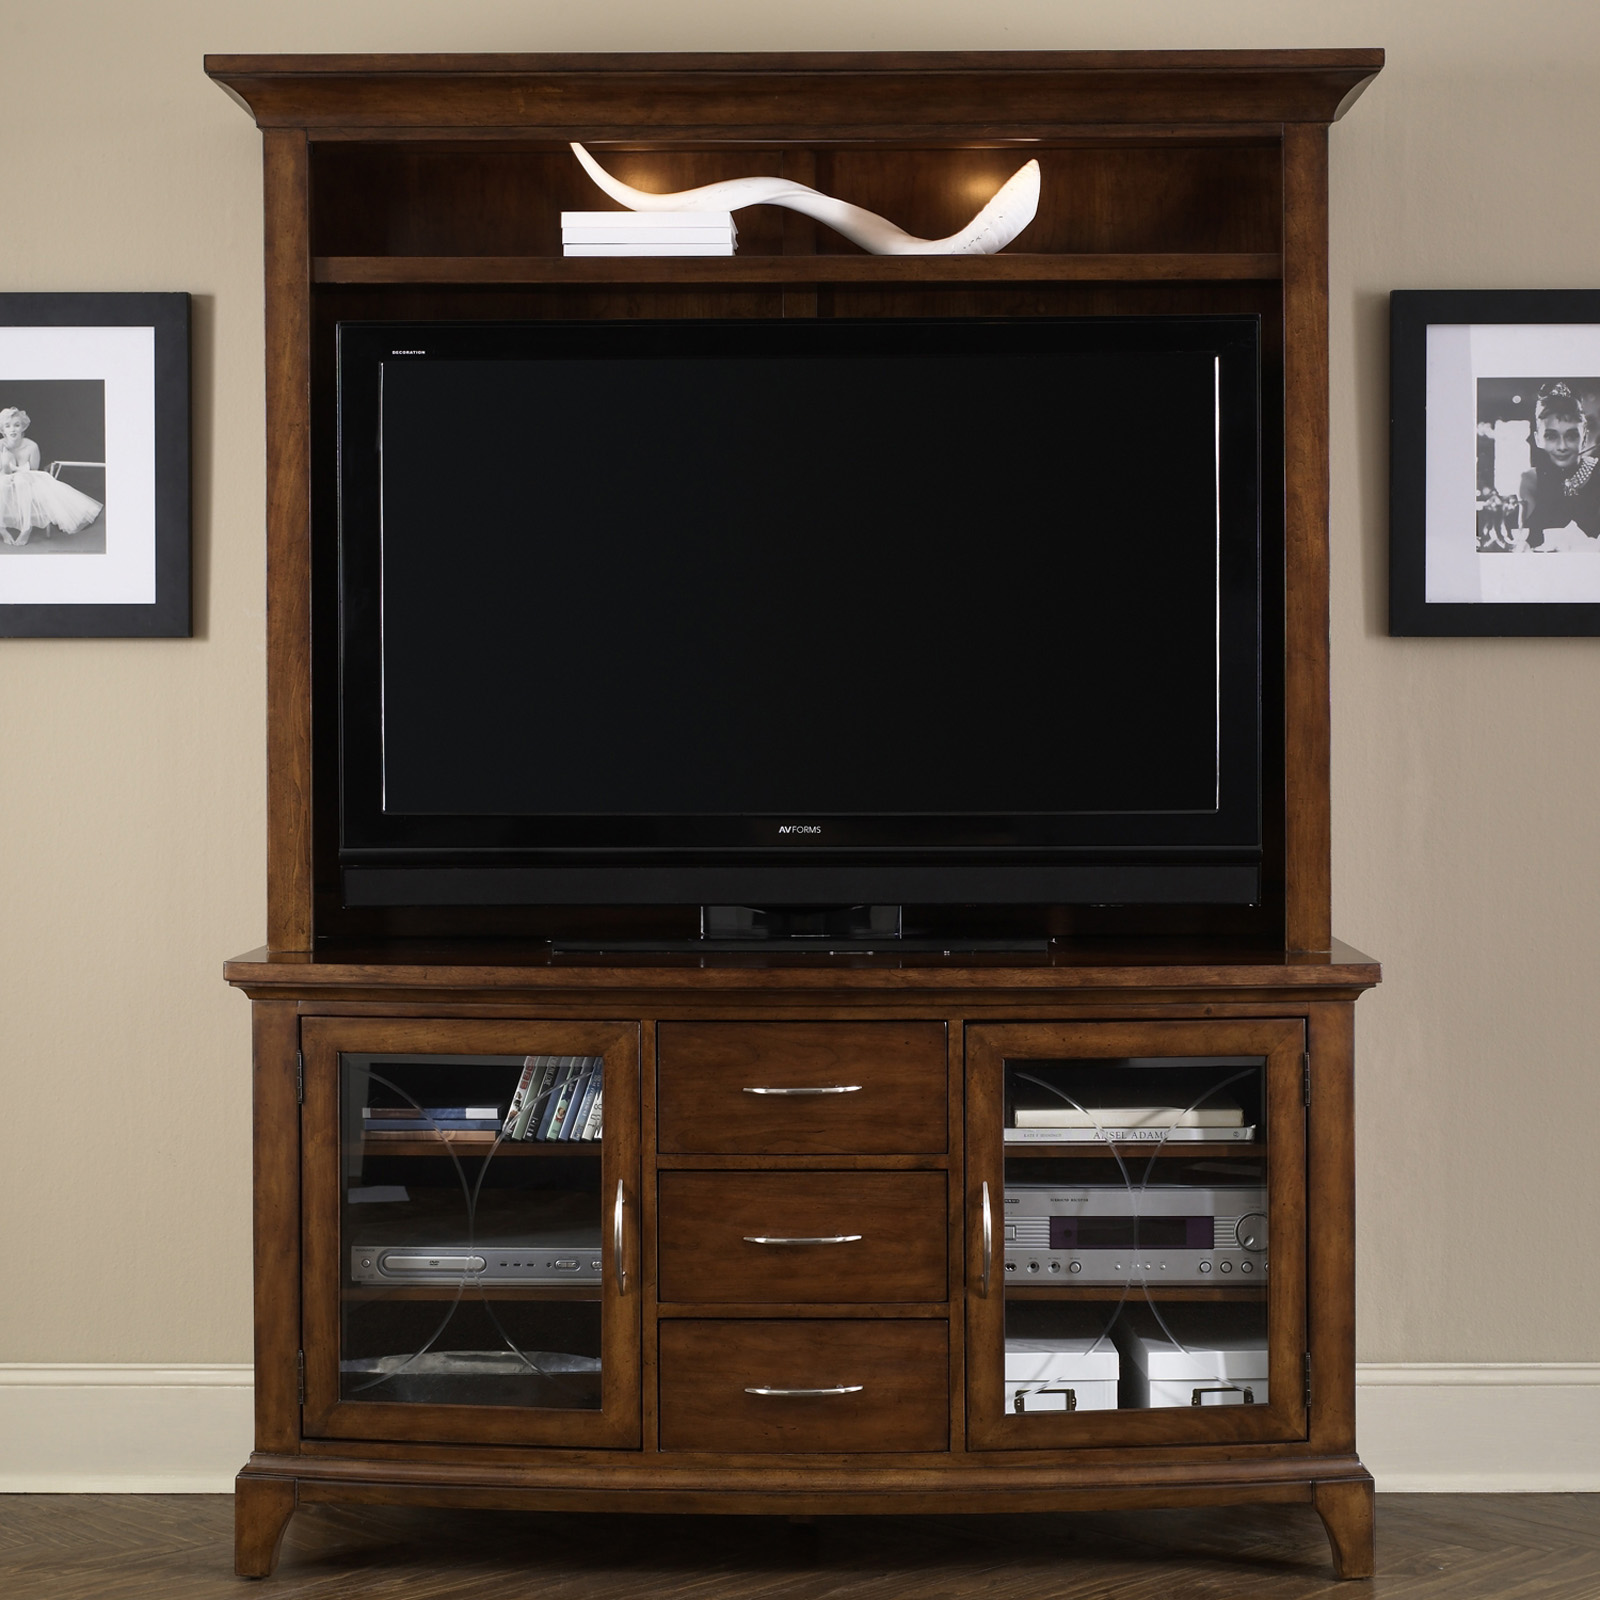 LIberty Furniture Parkview Entertainment Center at Hayneedle